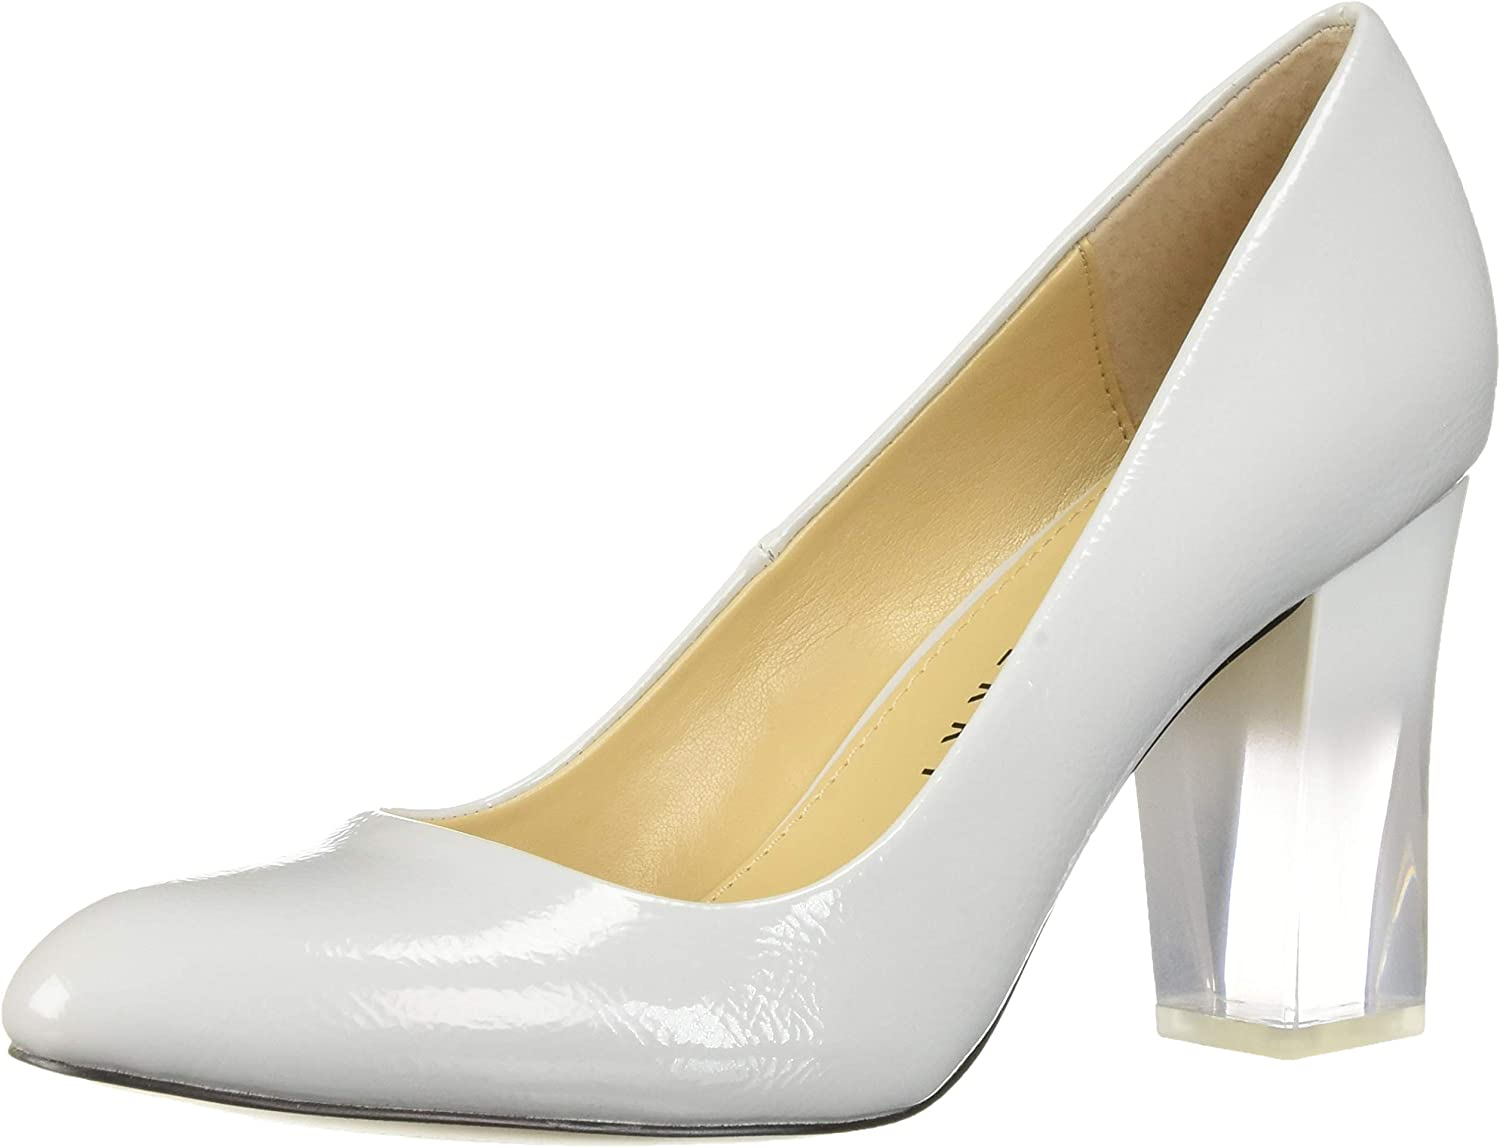 Middie-Crinkled Patent Pump Katy Perry Womens The A.w